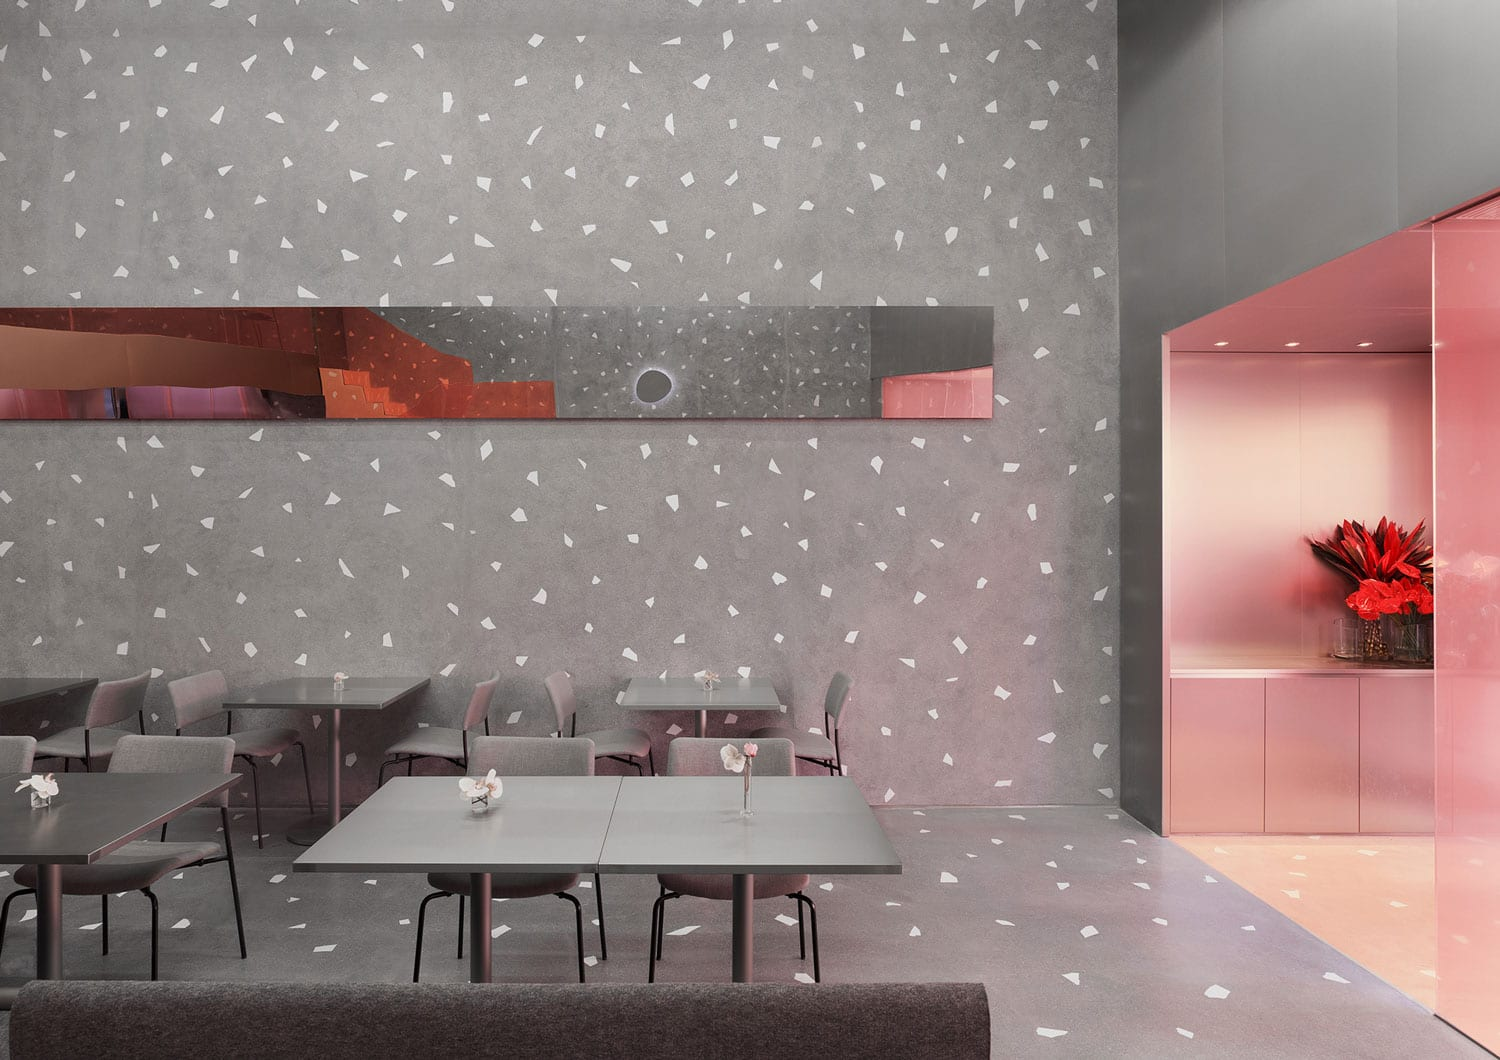 6e656049628 Nous opened it's first pioneering experimental floral restaurant in  Doncheng District in Dongguan earlier this year, offering mixed services of  exploring ...